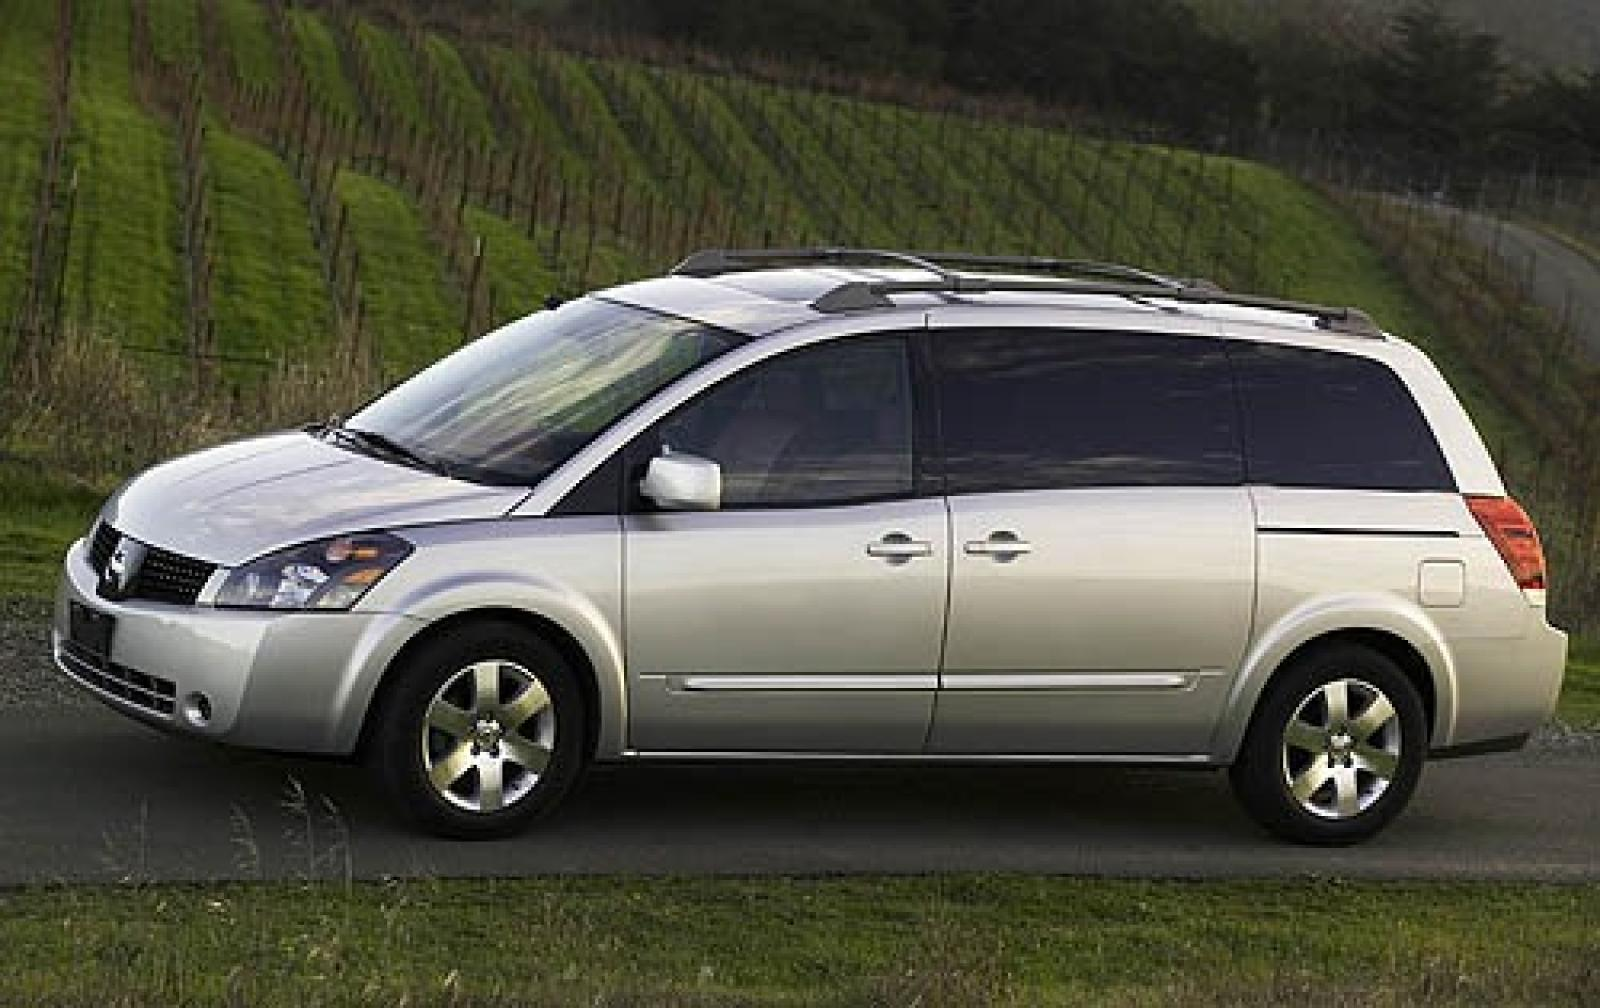 2006 nissan quest information and photos zombiedrive. Black Bedroom Furniture Sets. Home Design Ideas